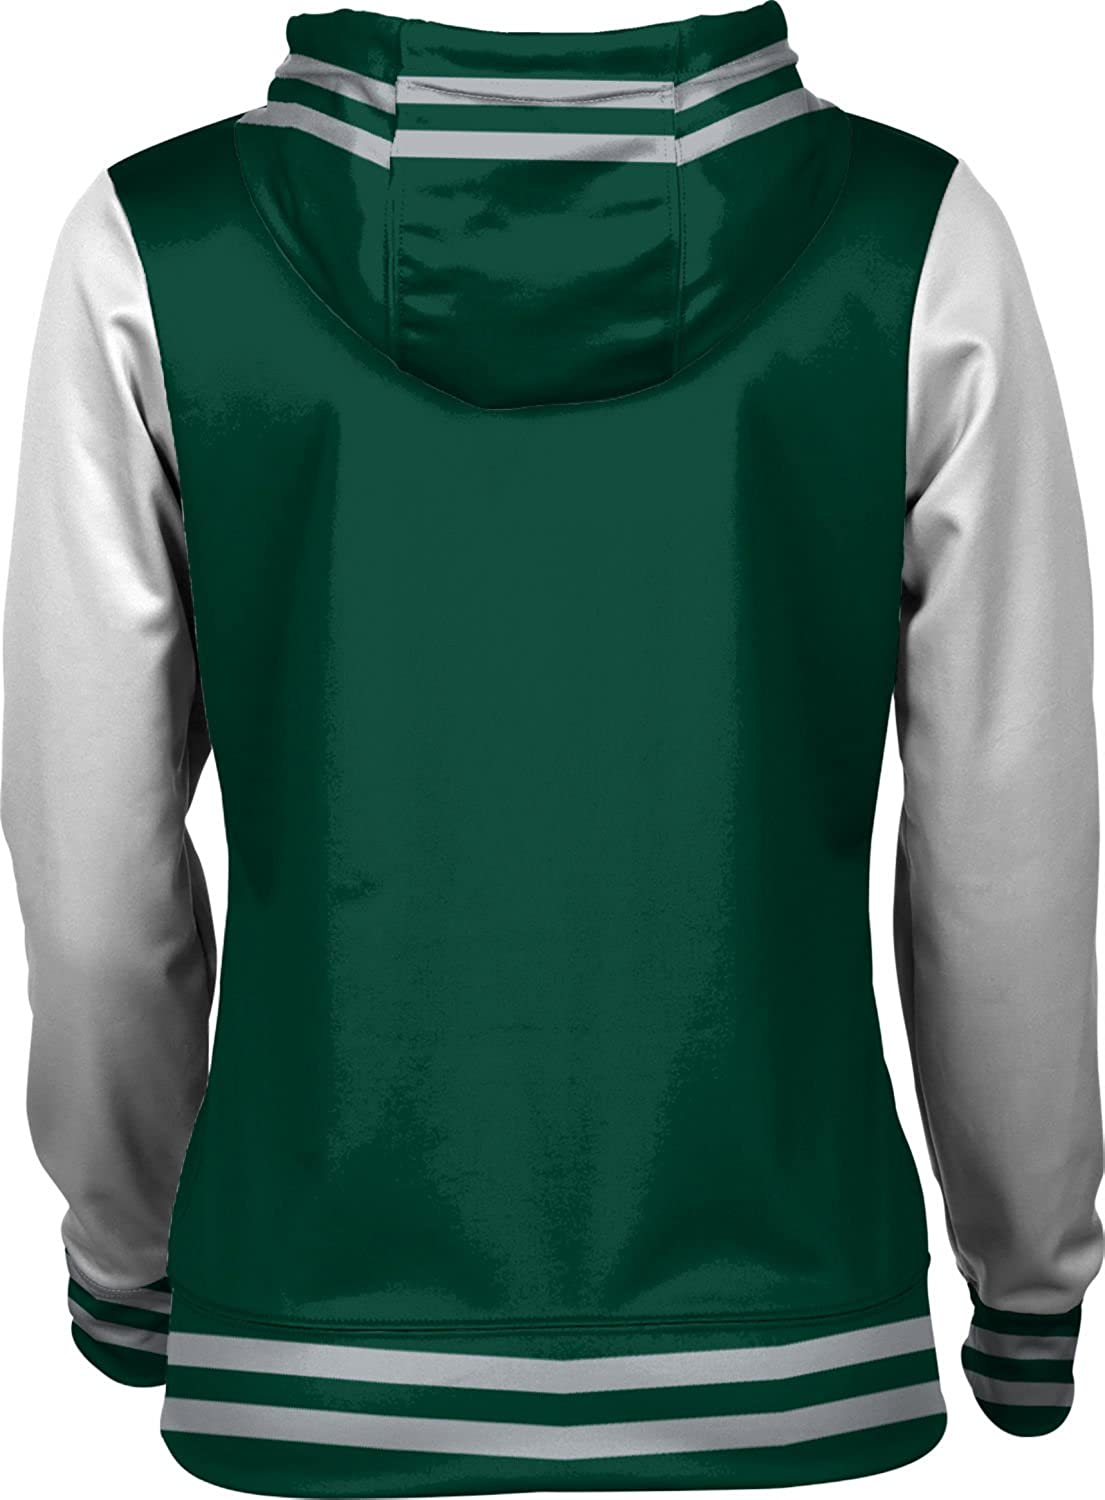 Letterman ProSphere Utah Valley University Girls Zipper Hoodie School Spirit Sweatshirt